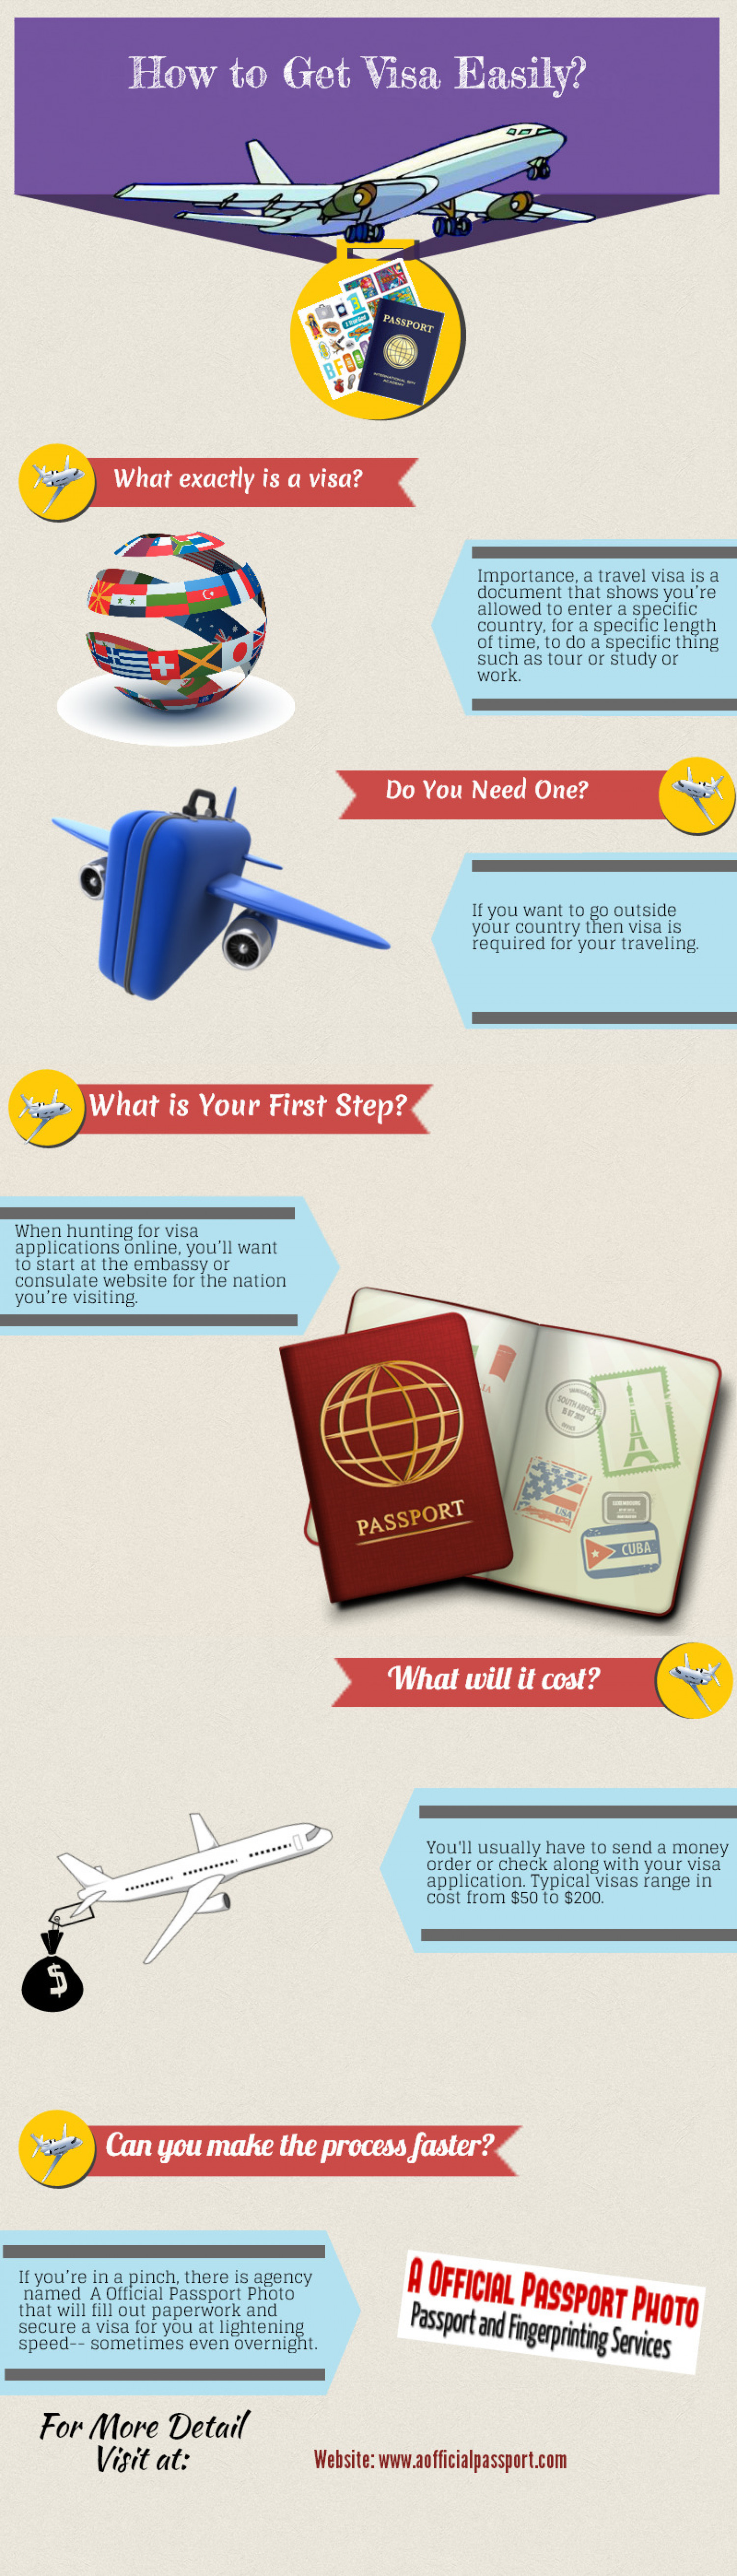 How to Get Visa Easily Infographic